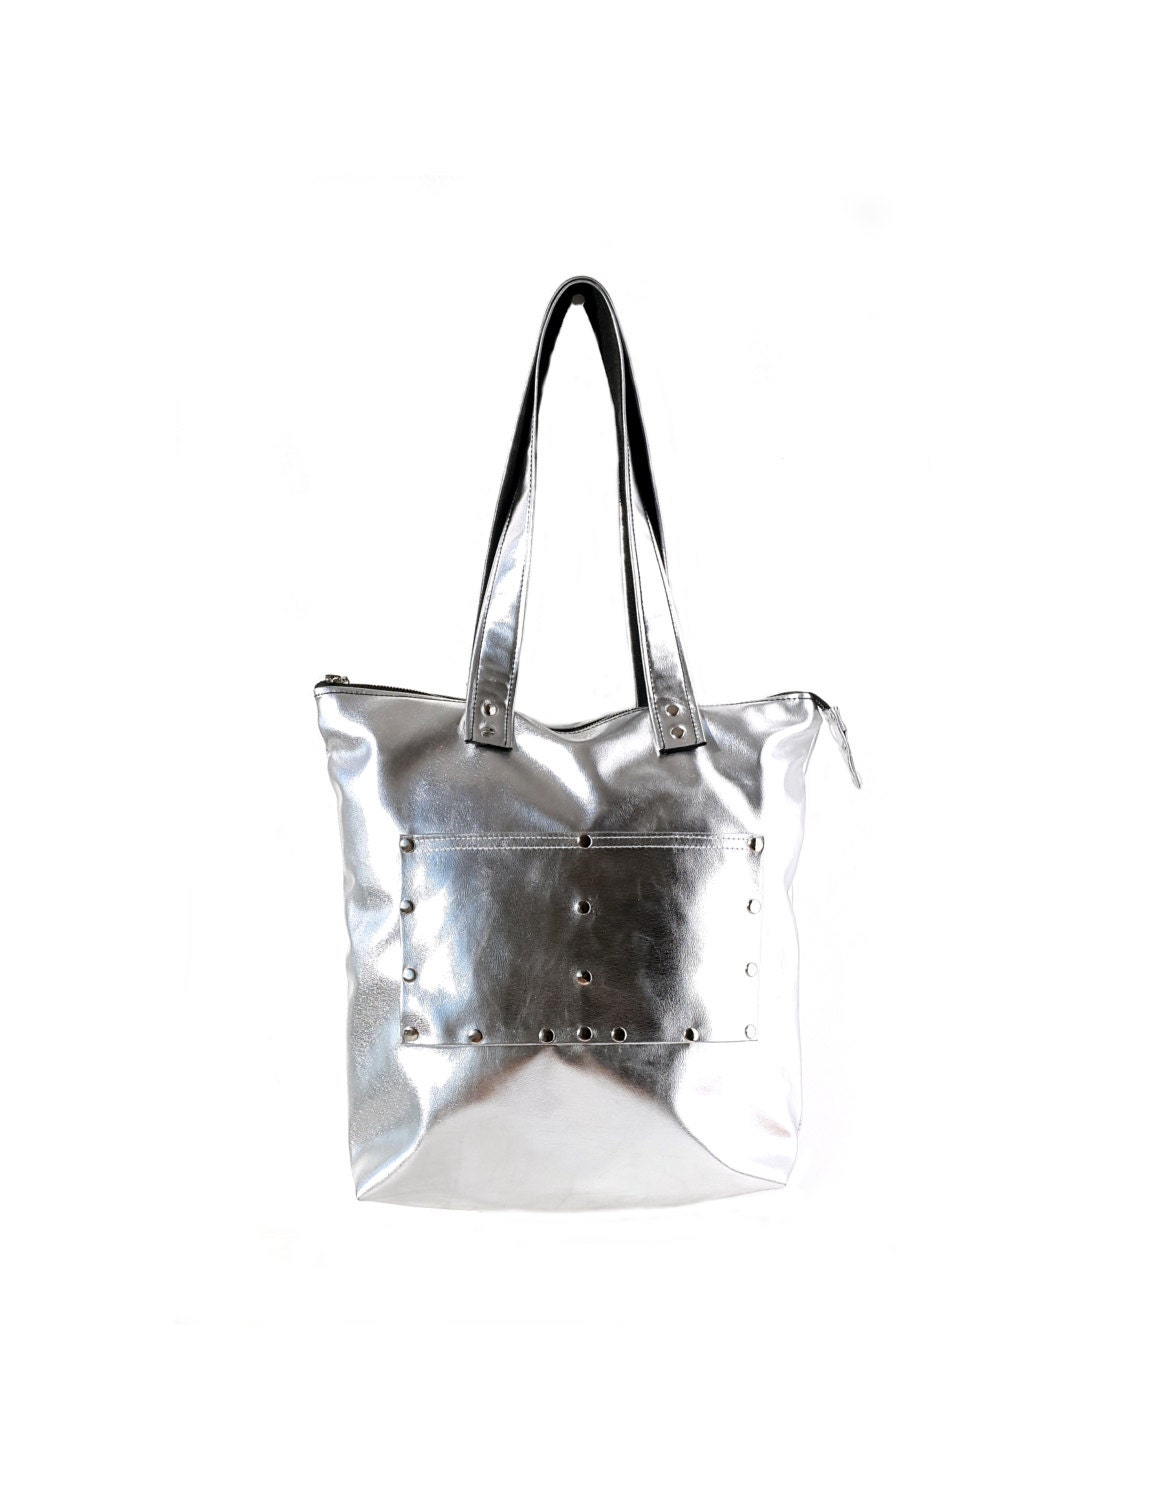 ysl mens backpack - Popular items for silver leather tote on Etsy